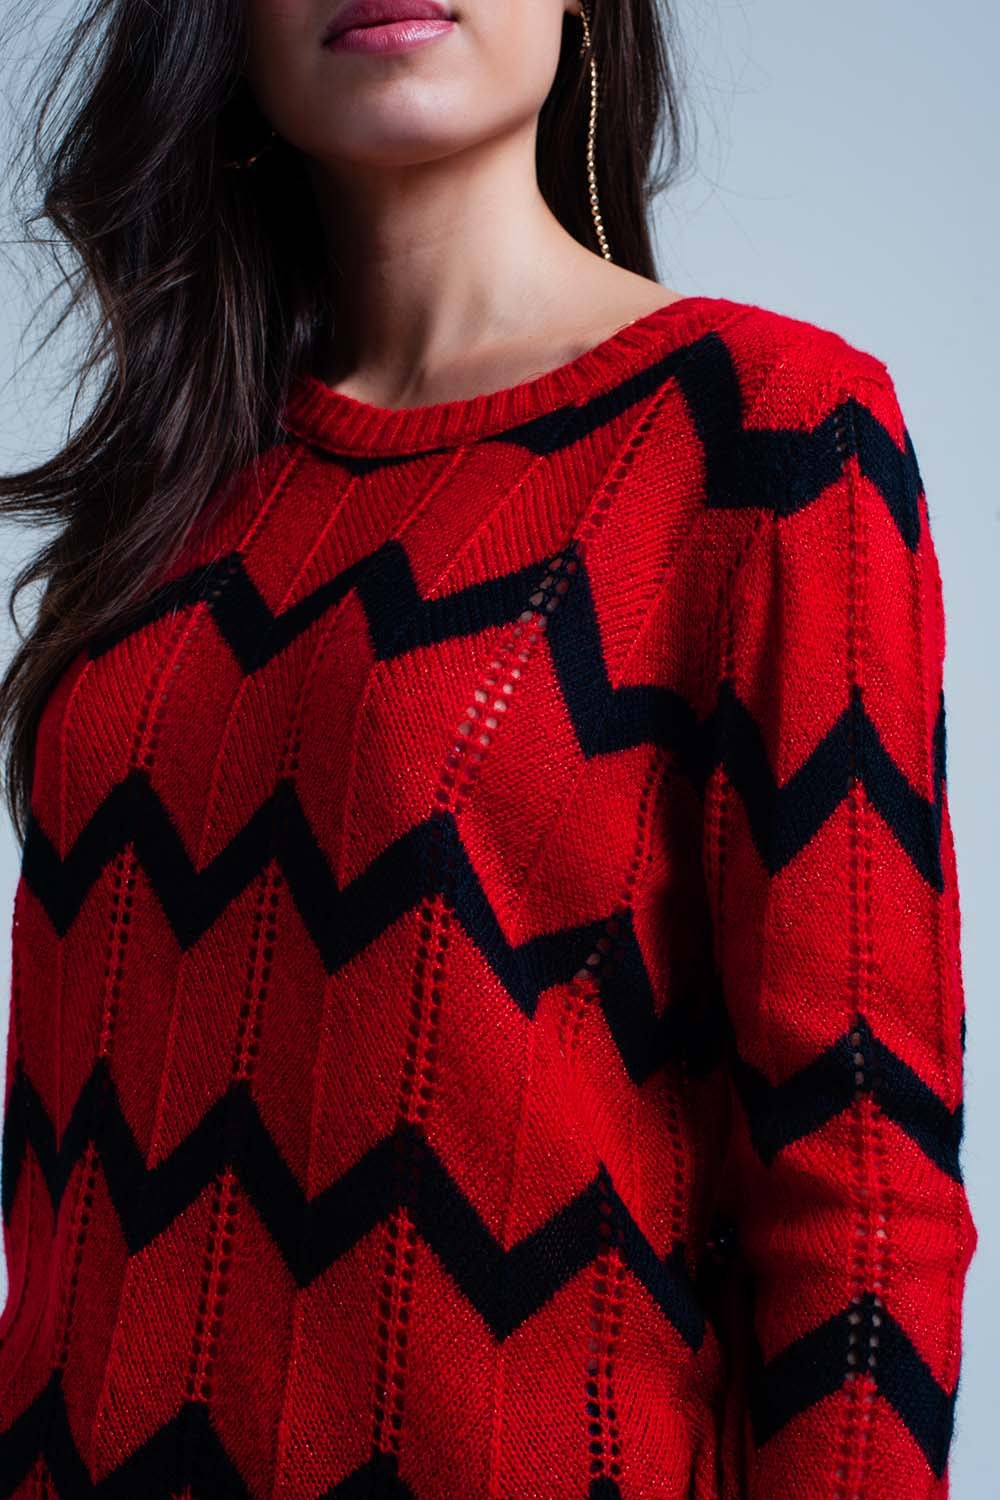 Red Glitter Sweater In Black Zigzag Pattern-Women - Apparel - Sweaters - Pull Over-Product Details Red chunky knitted pullover of very airy glitter fabrics with a black zigzag pattern. The jumper has a round neck and long sleeves with a relaxed fitting.-Keyomi-Sook